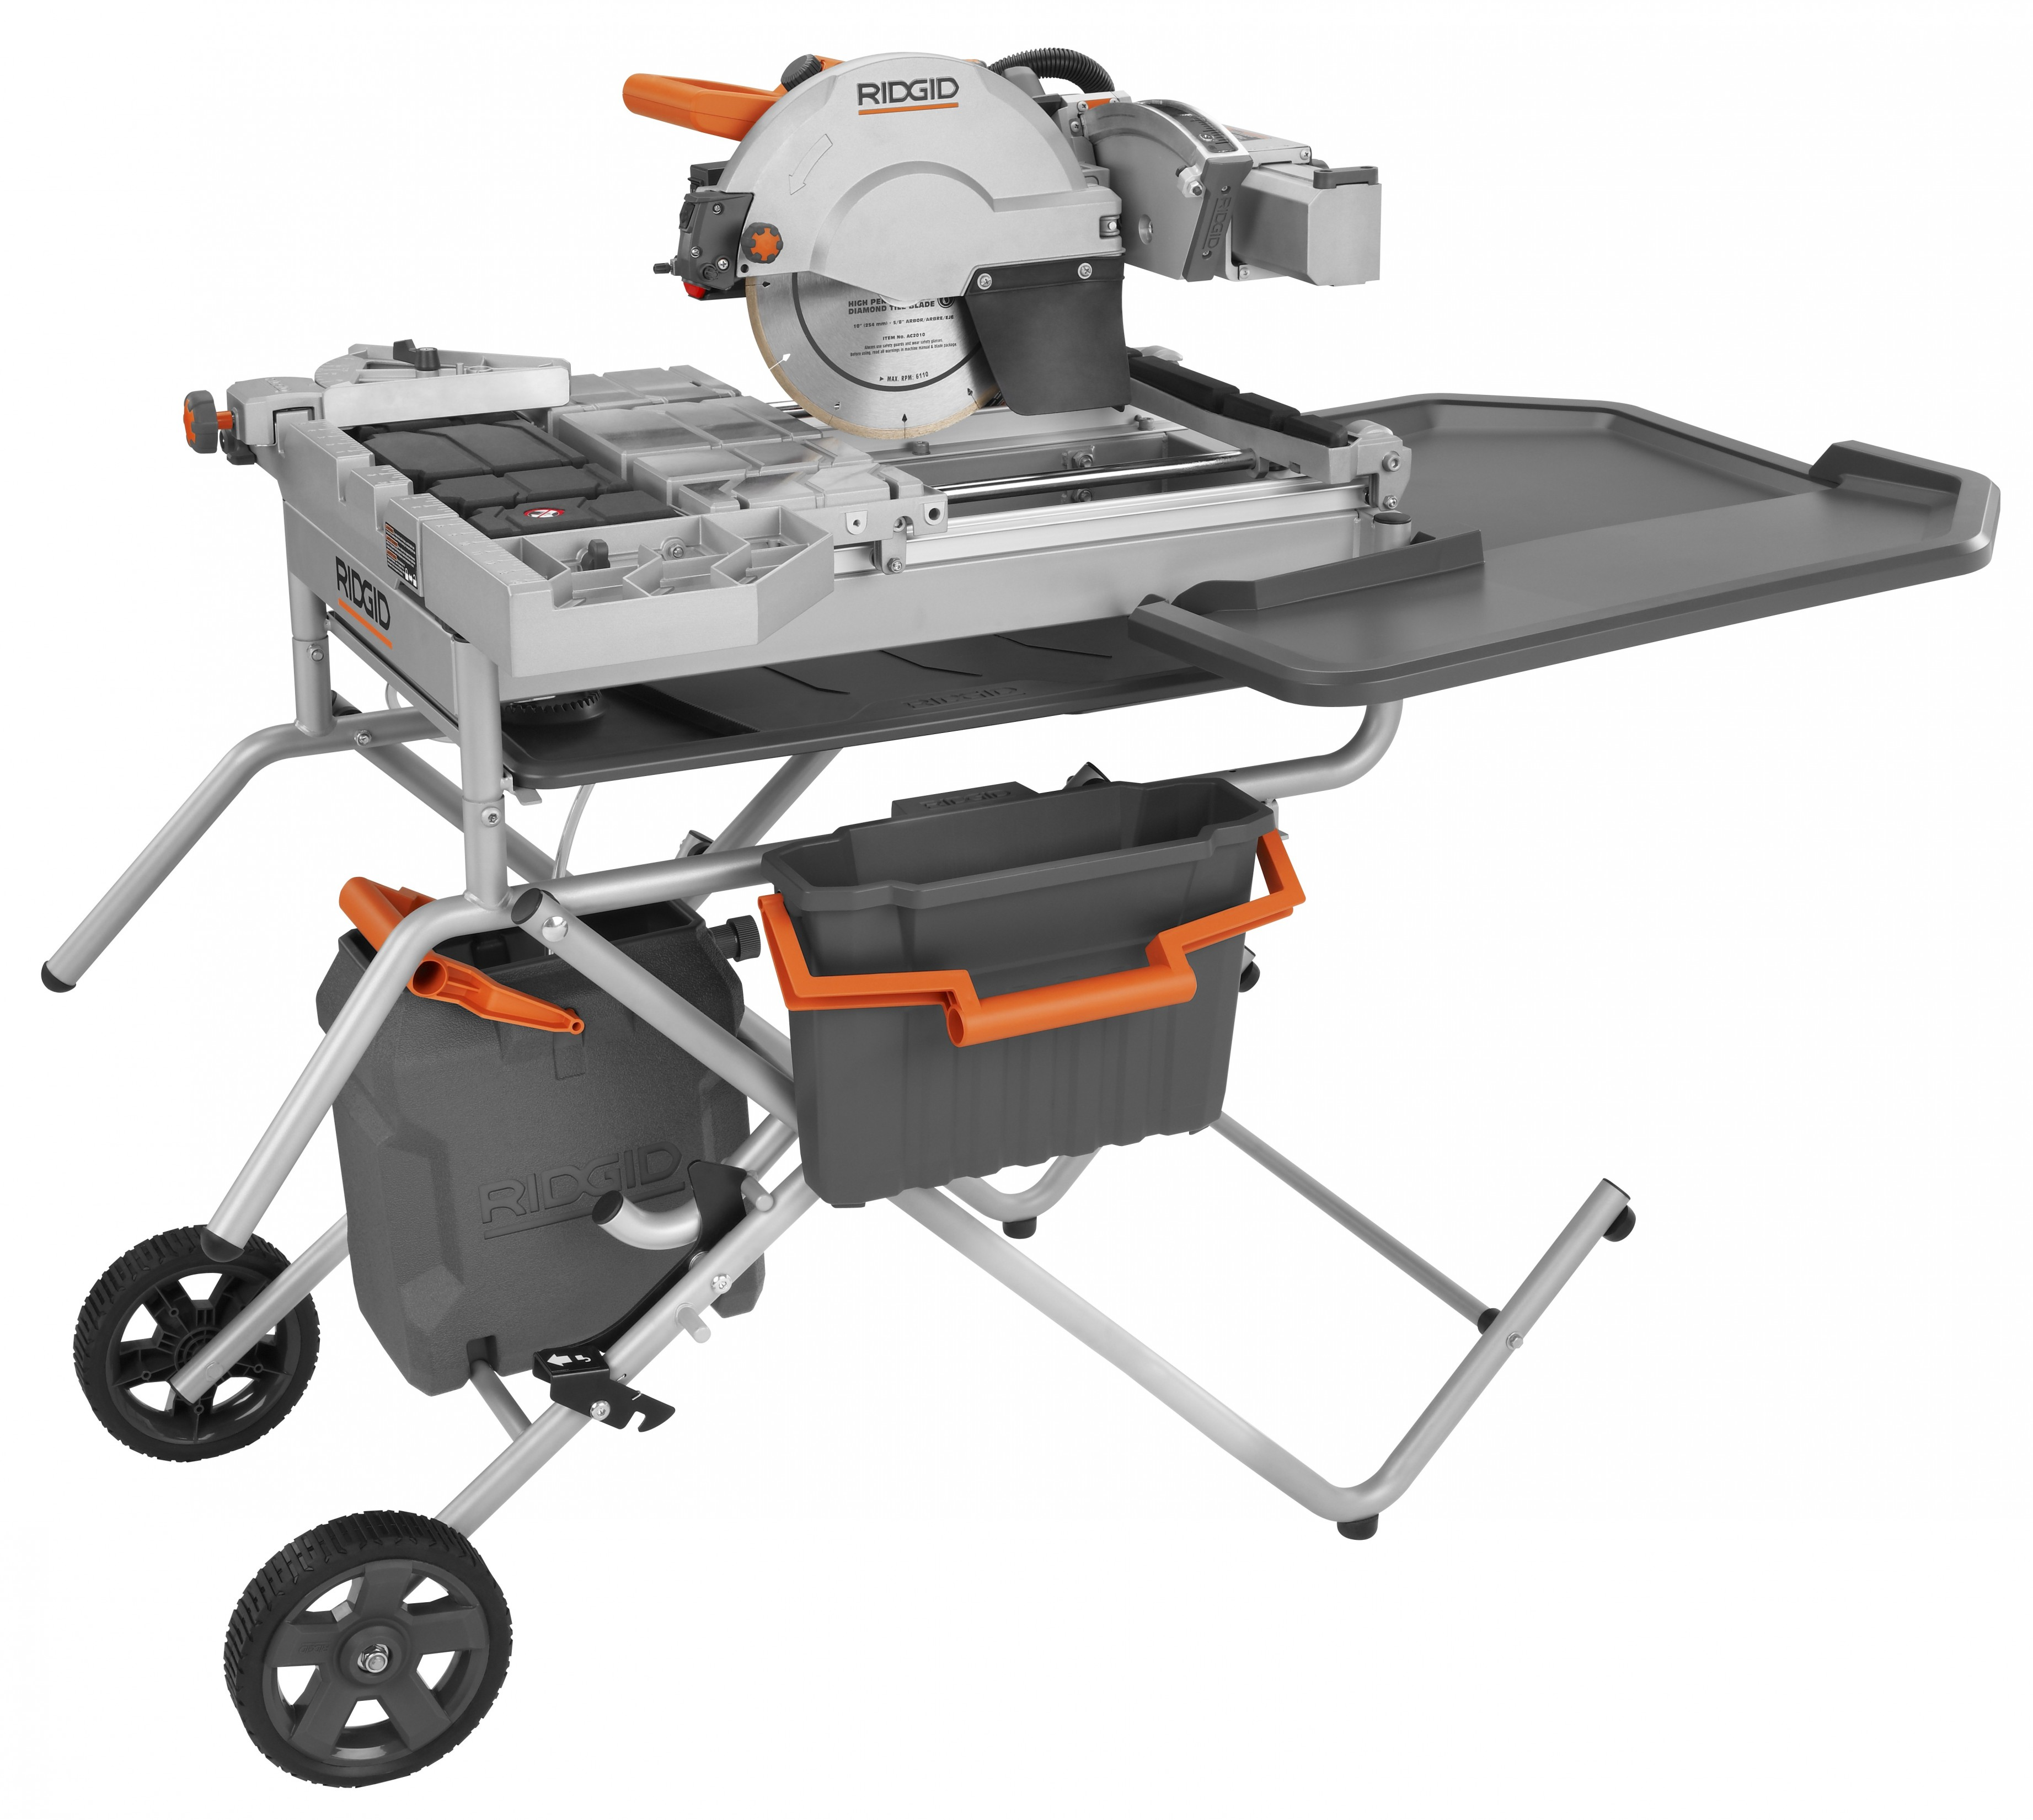 ridgid tile saw. the ridgid tile saw t